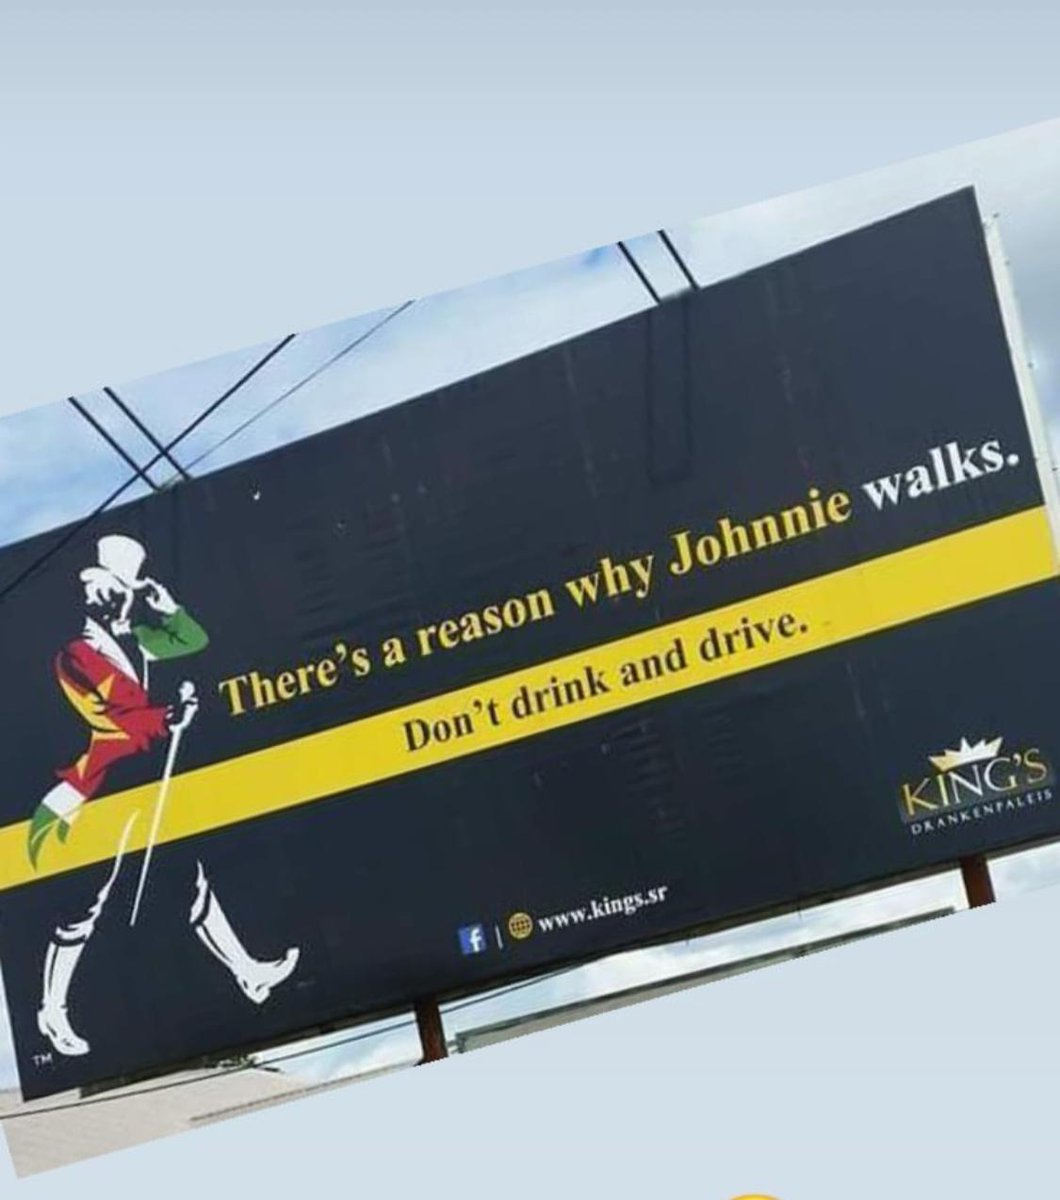 A true bewda will heed to Johnnie Bhai's advice.  #JohnnieWalker <br>http://pic.twitter.com/26mlQ5asEA